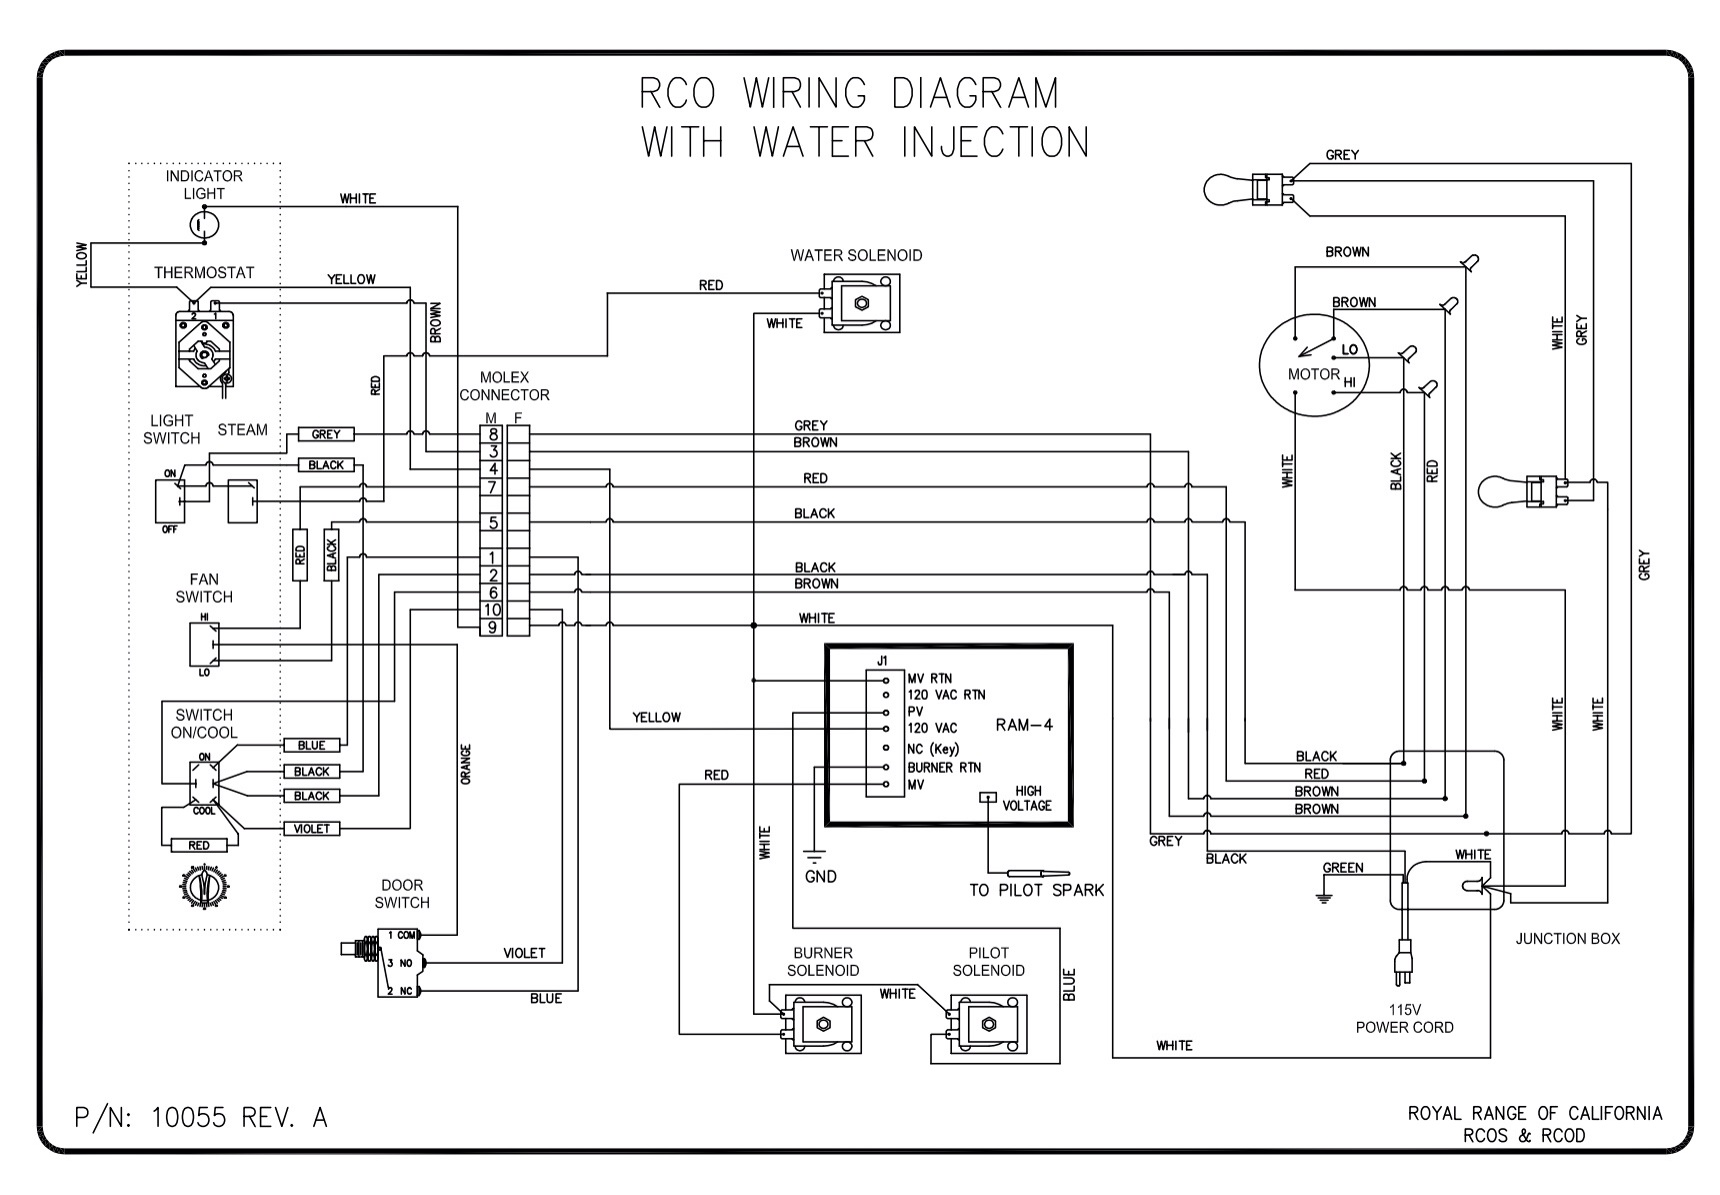 RCO with water inj?resize=665%2C462&ssl=1 oven wiring instructions wiring diagram  at n-0.co